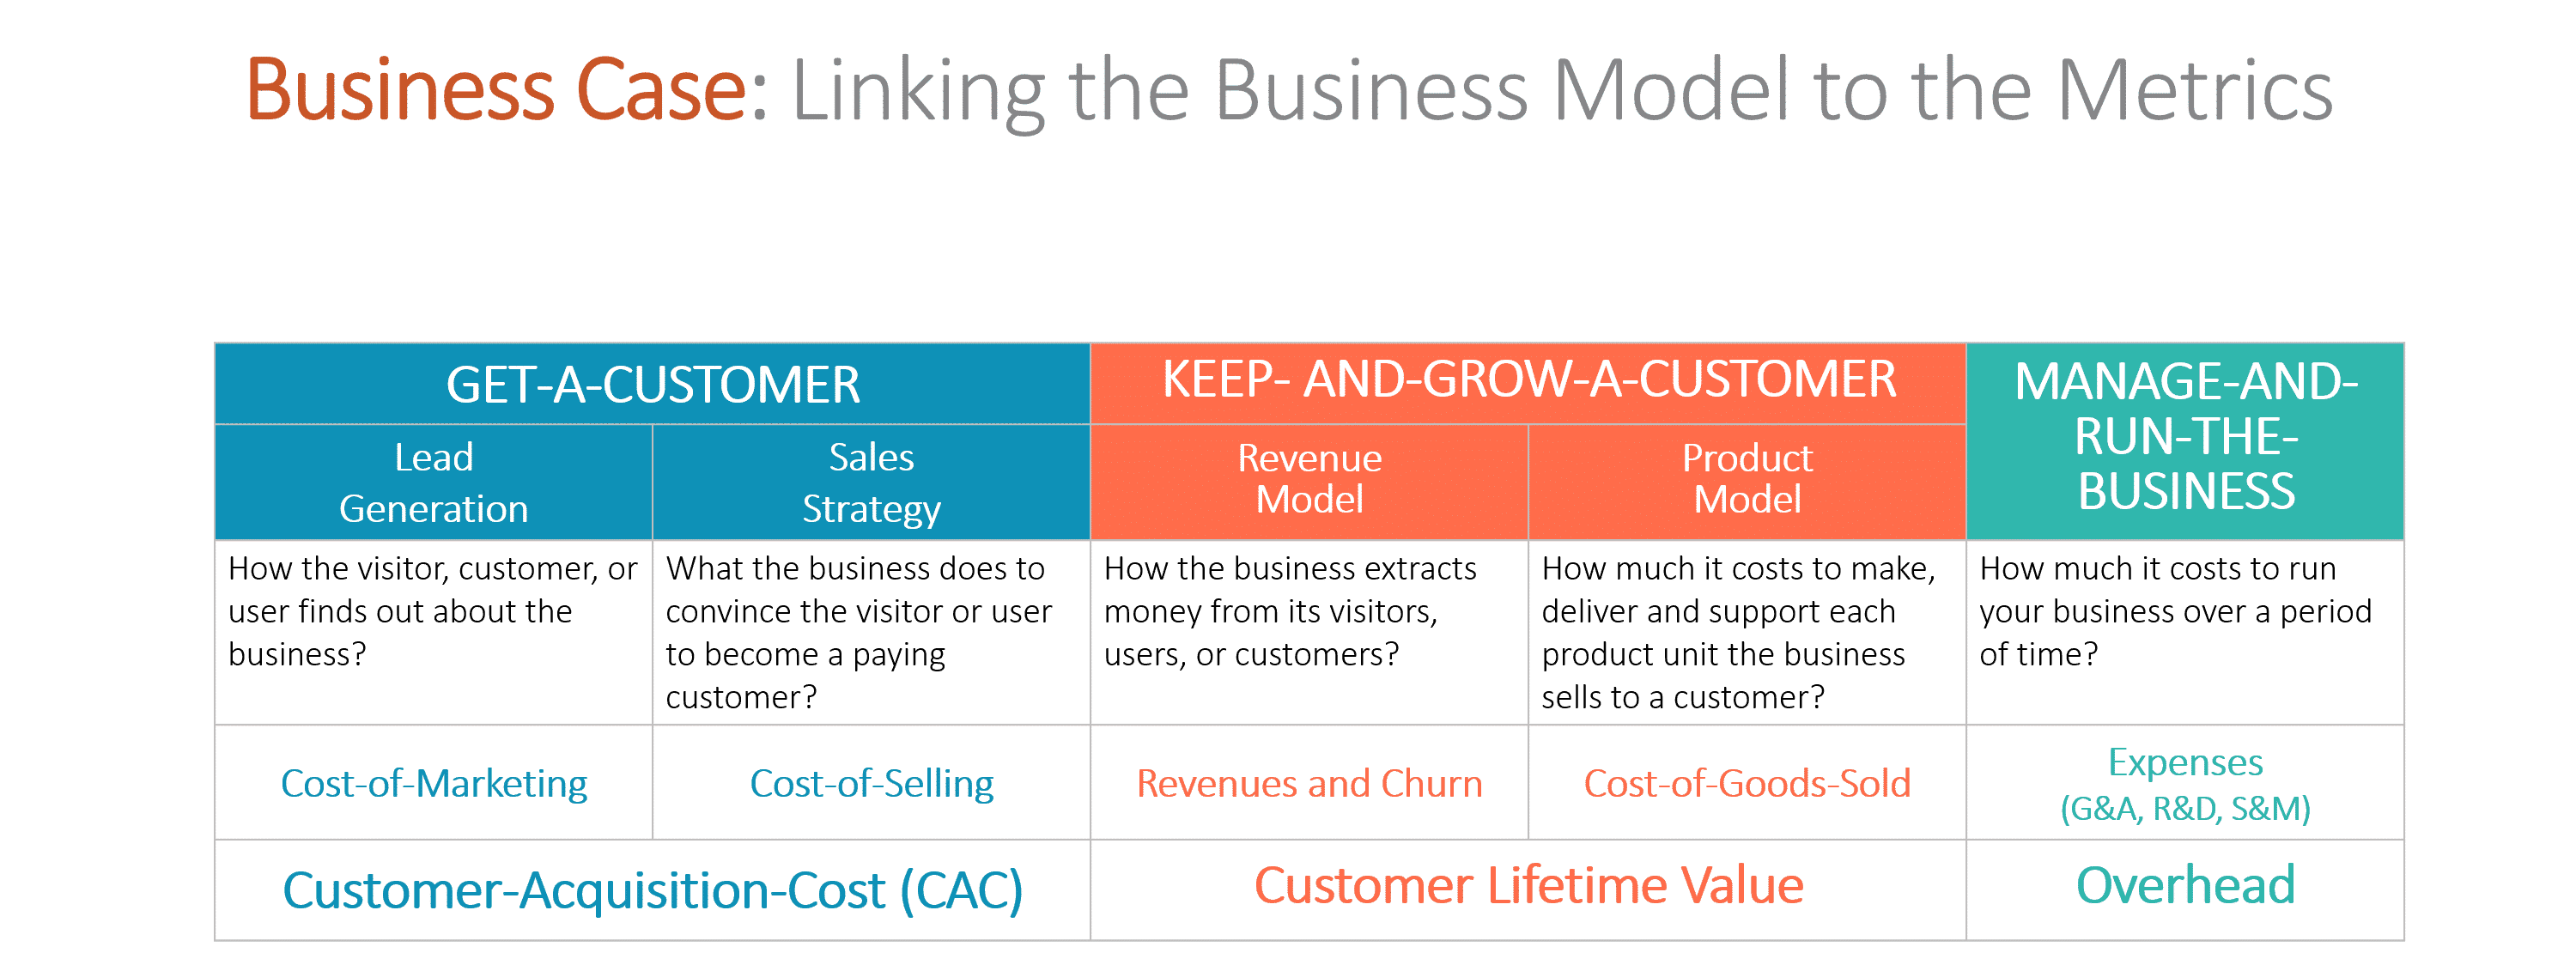 Business Case Metrics